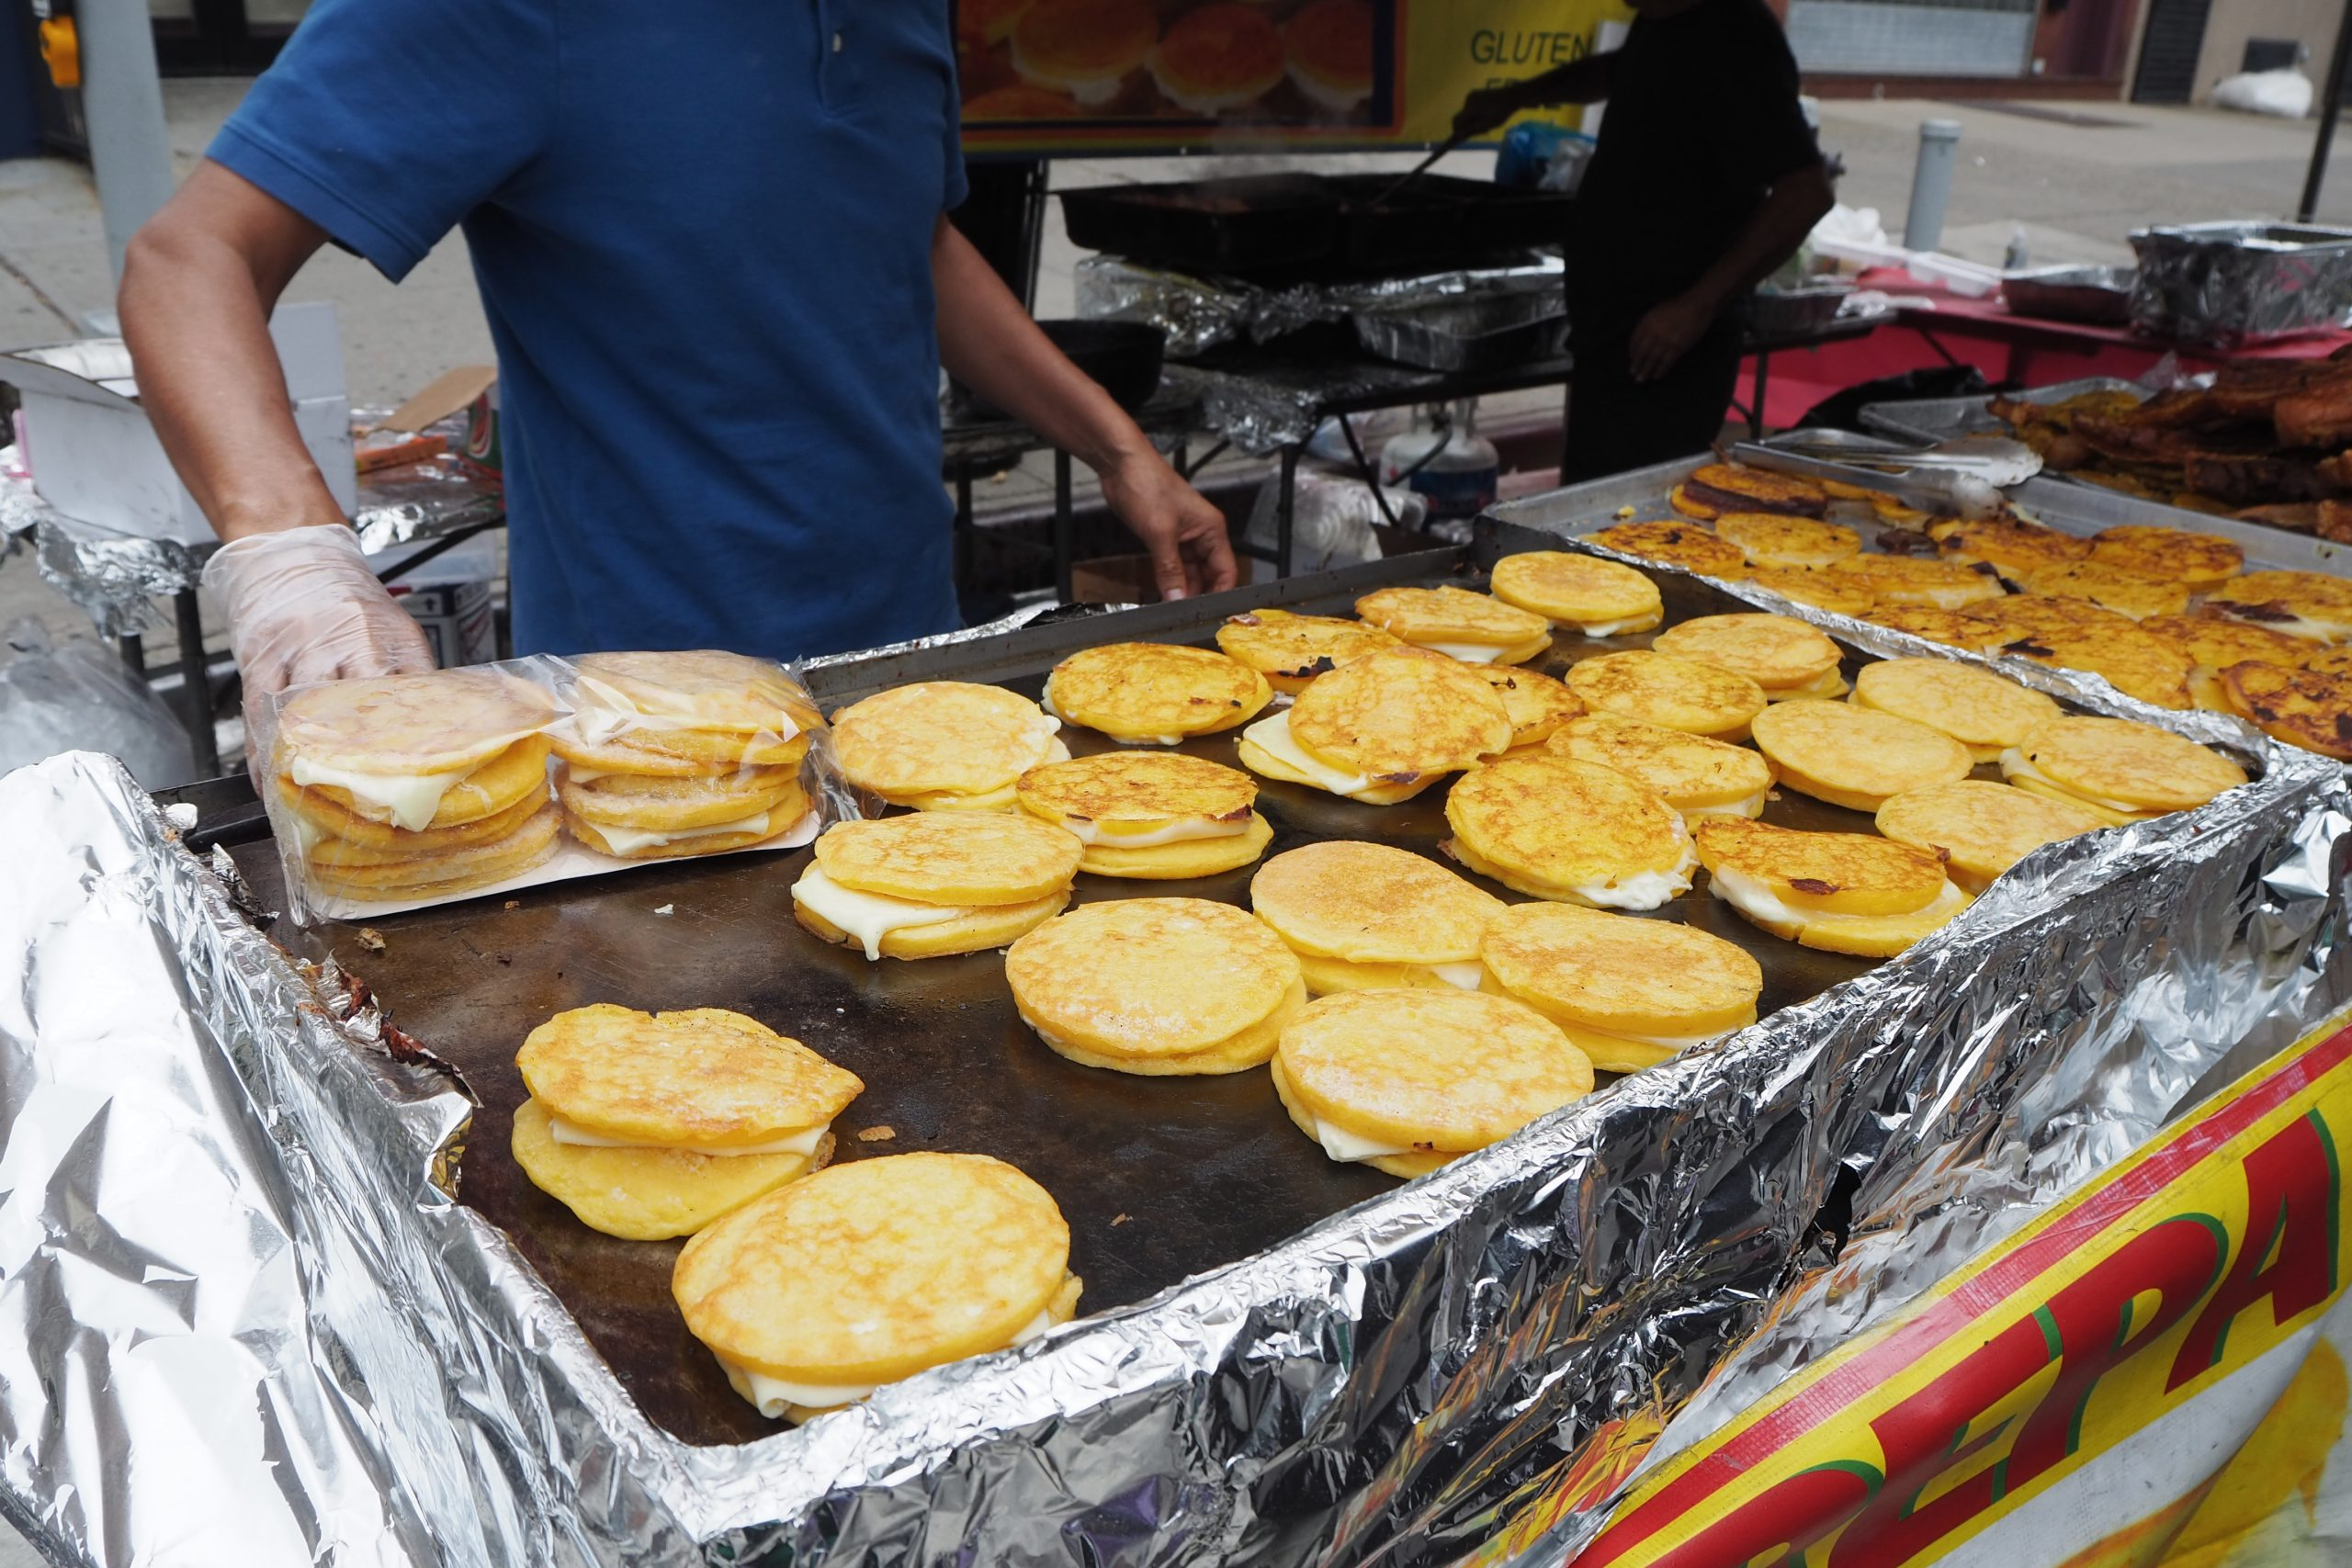 In order to sell, lease or offer services in public spaces in NYC, you will need a General Vendor License to sell merchandise, or a Mobile Food Vending (MFV) Permit and license to sell food.